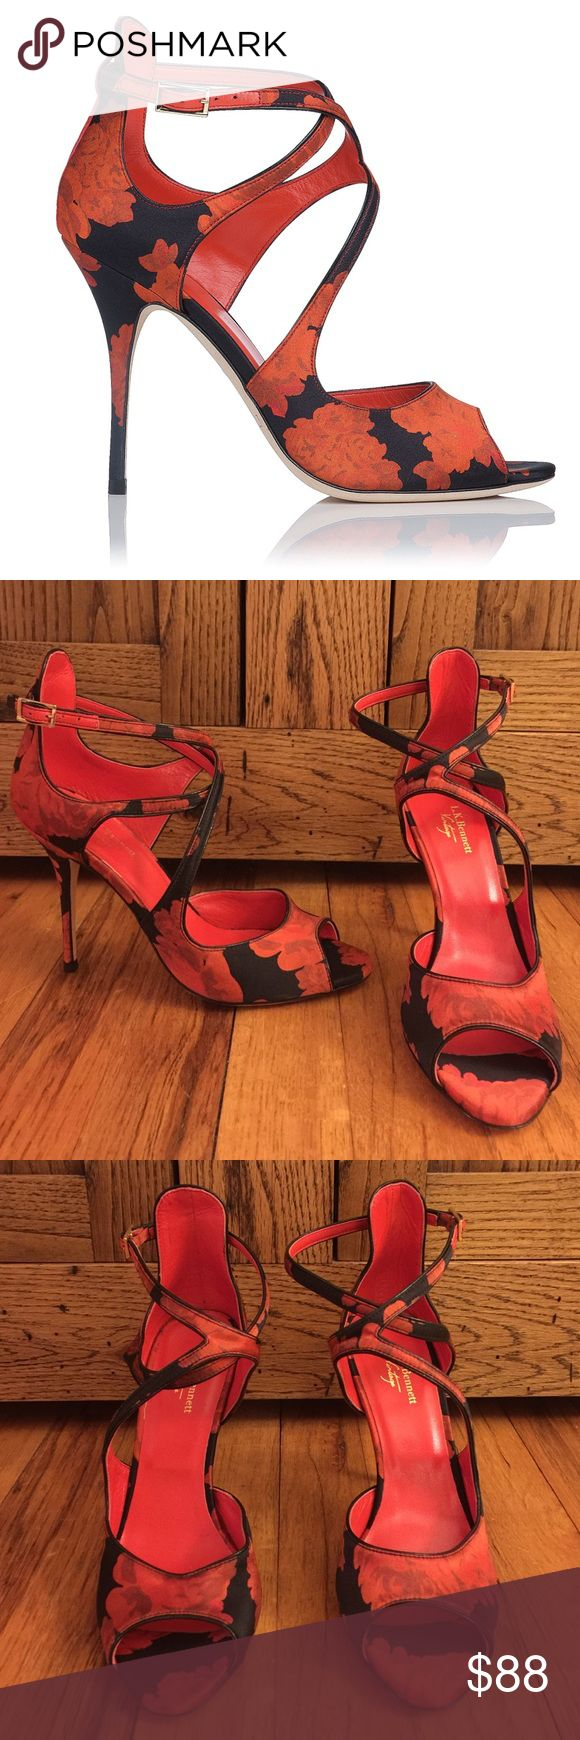 😍NWT LK Bennett Vintage Serena heels! Sz 37 Gorgeous!! L.K. Bennett Vintage Serena Pumps Red/Black Floral Satin strapy pumps Size 37 NWT  Blue arrow on bottoms see photos Here's the scoop ....Asymmetrical straps lend a delicate touch to floral satin peep-toe sandals. Buckled ankle strap. Leather lining and sole.Made in Italy.  MEASUREMENTS Heel: 3.5in / 90mm Founded in London in 1990 by Linda Bennett, L.K. Bennett has established itself as a leading British fashion brand. LK Bennett Shoes…